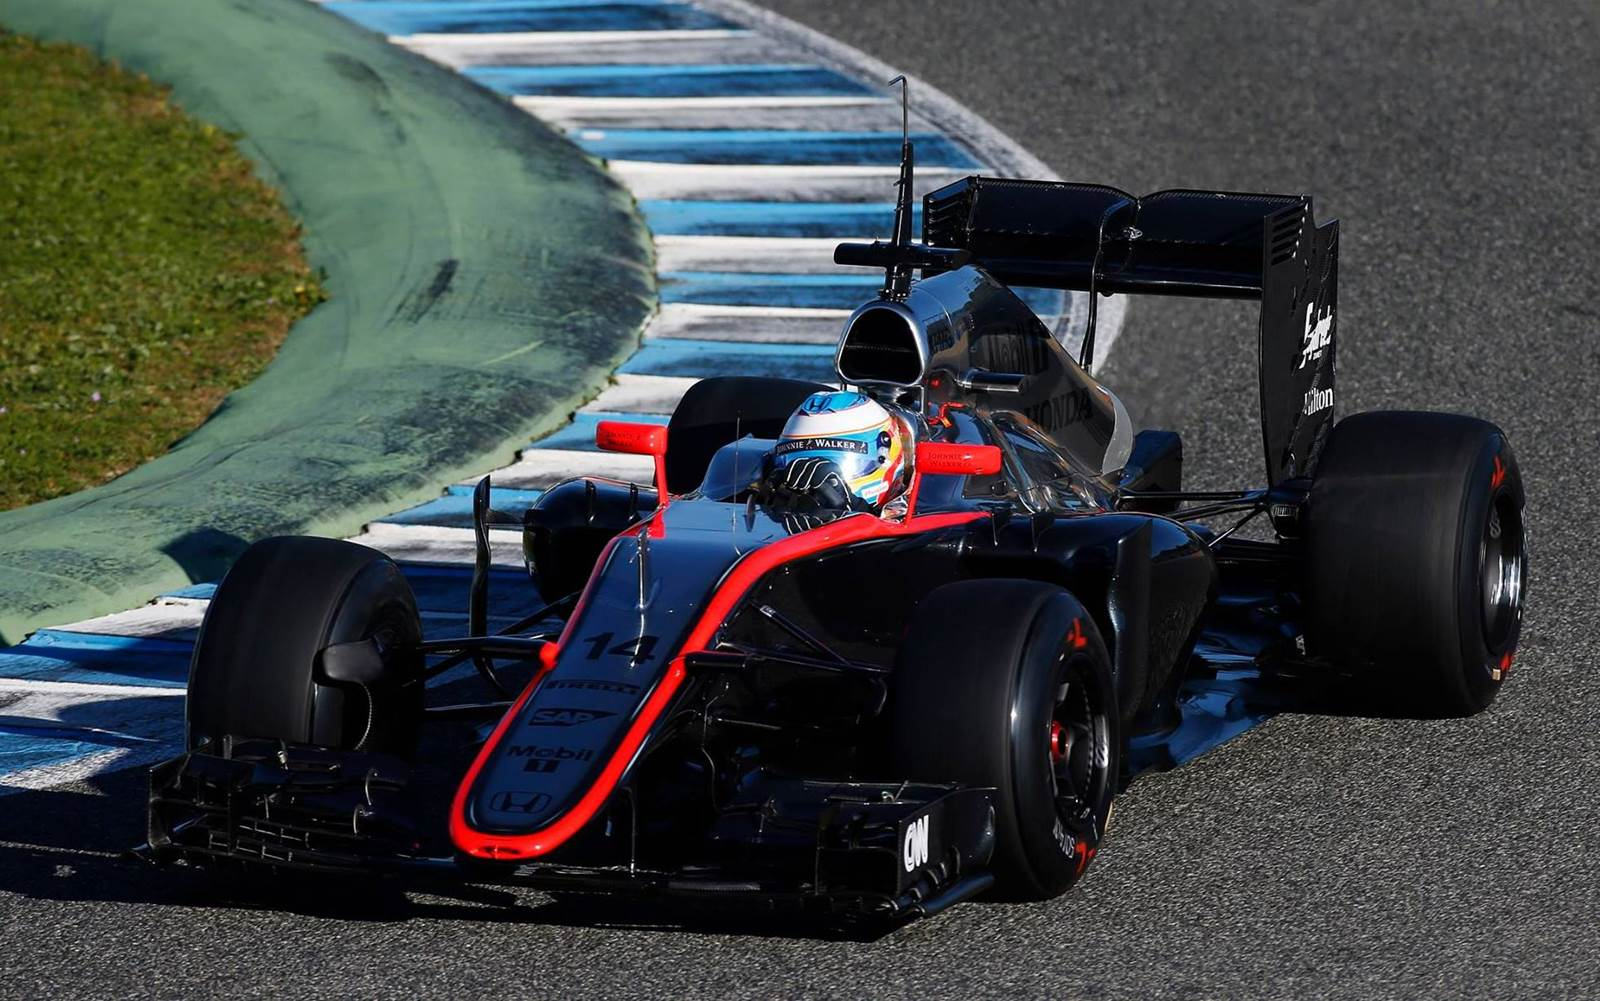 McLaren Honda MP4/30 - Alonso